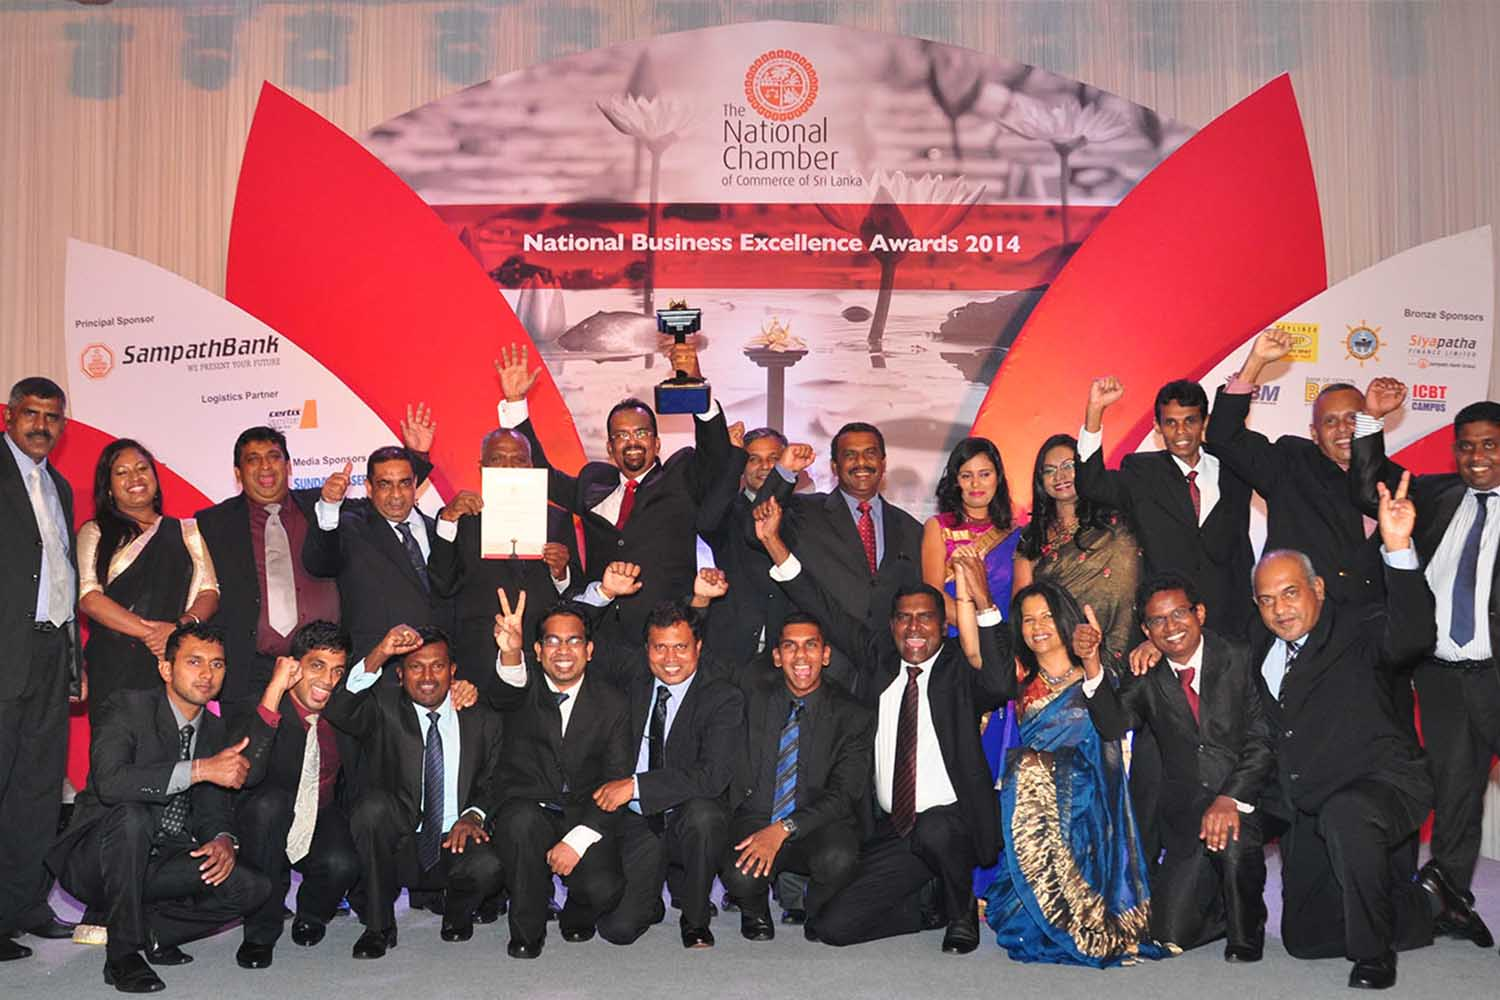 GOLD AWARD FOR CONSTRUCTIONS SECTOR